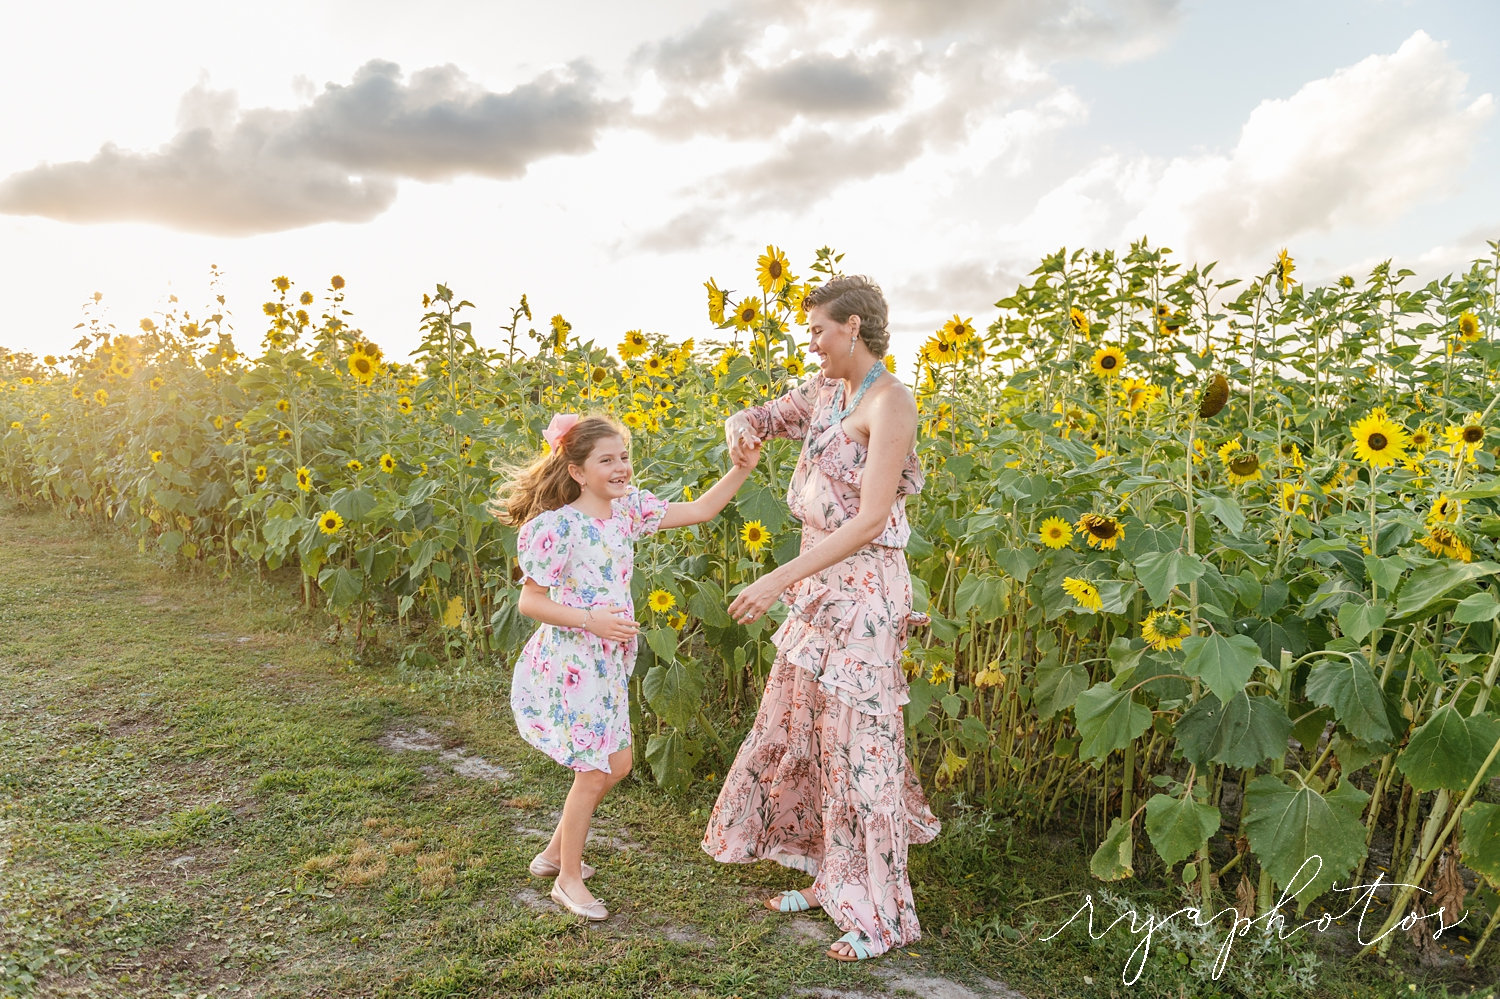 mom twirling daughter, twirling photos, twirling pictures, sunflowers, Rya Duncklee Photos